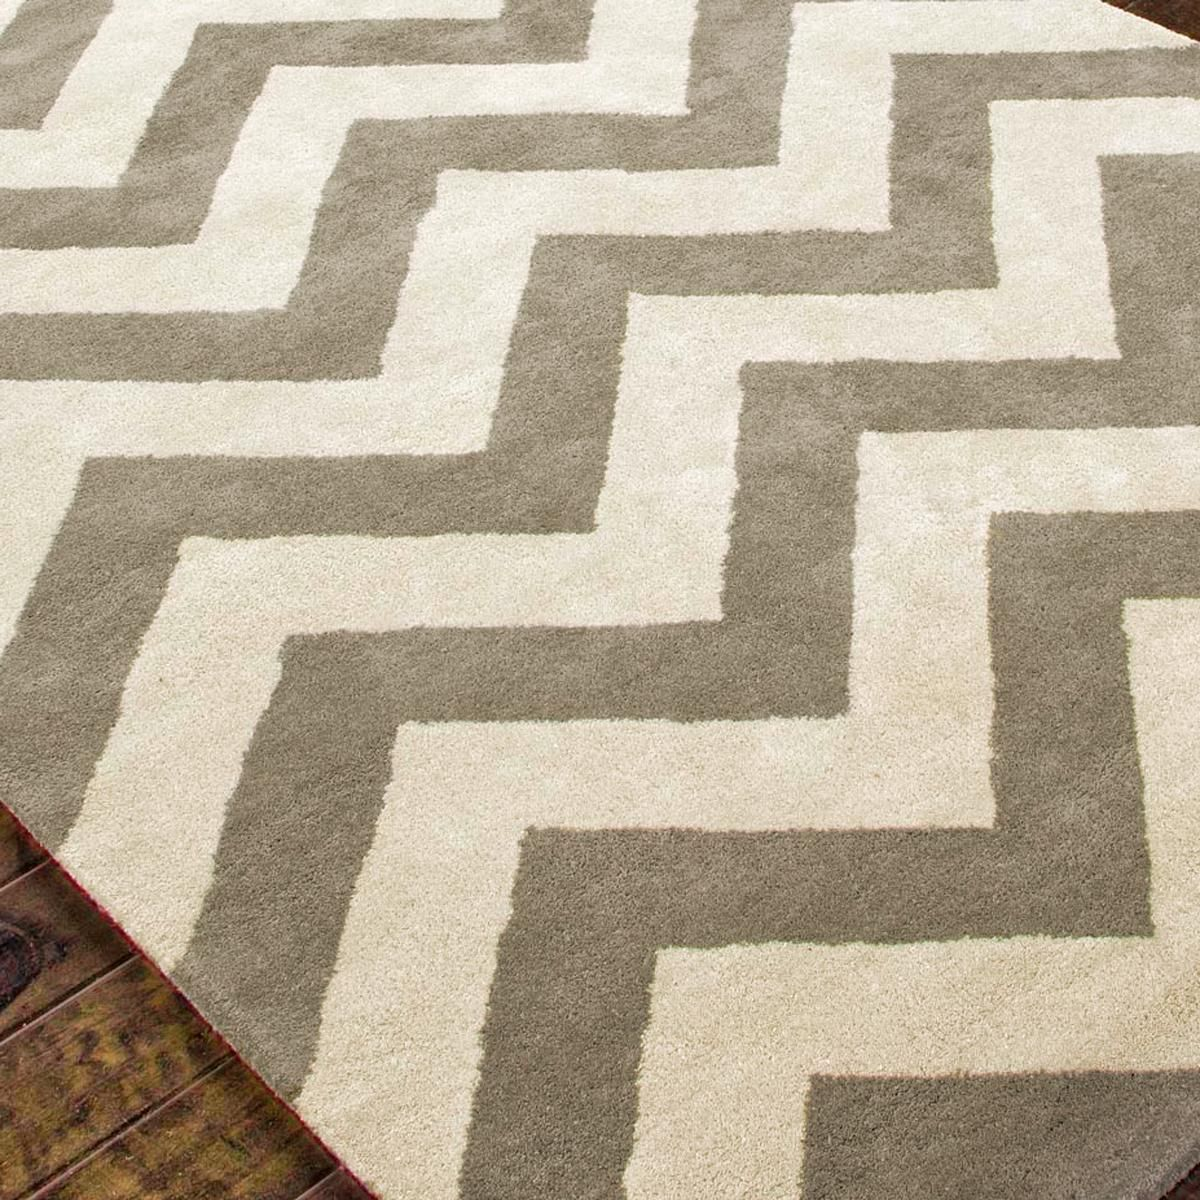 Plush Wool Chevron Rug In Stone Gray